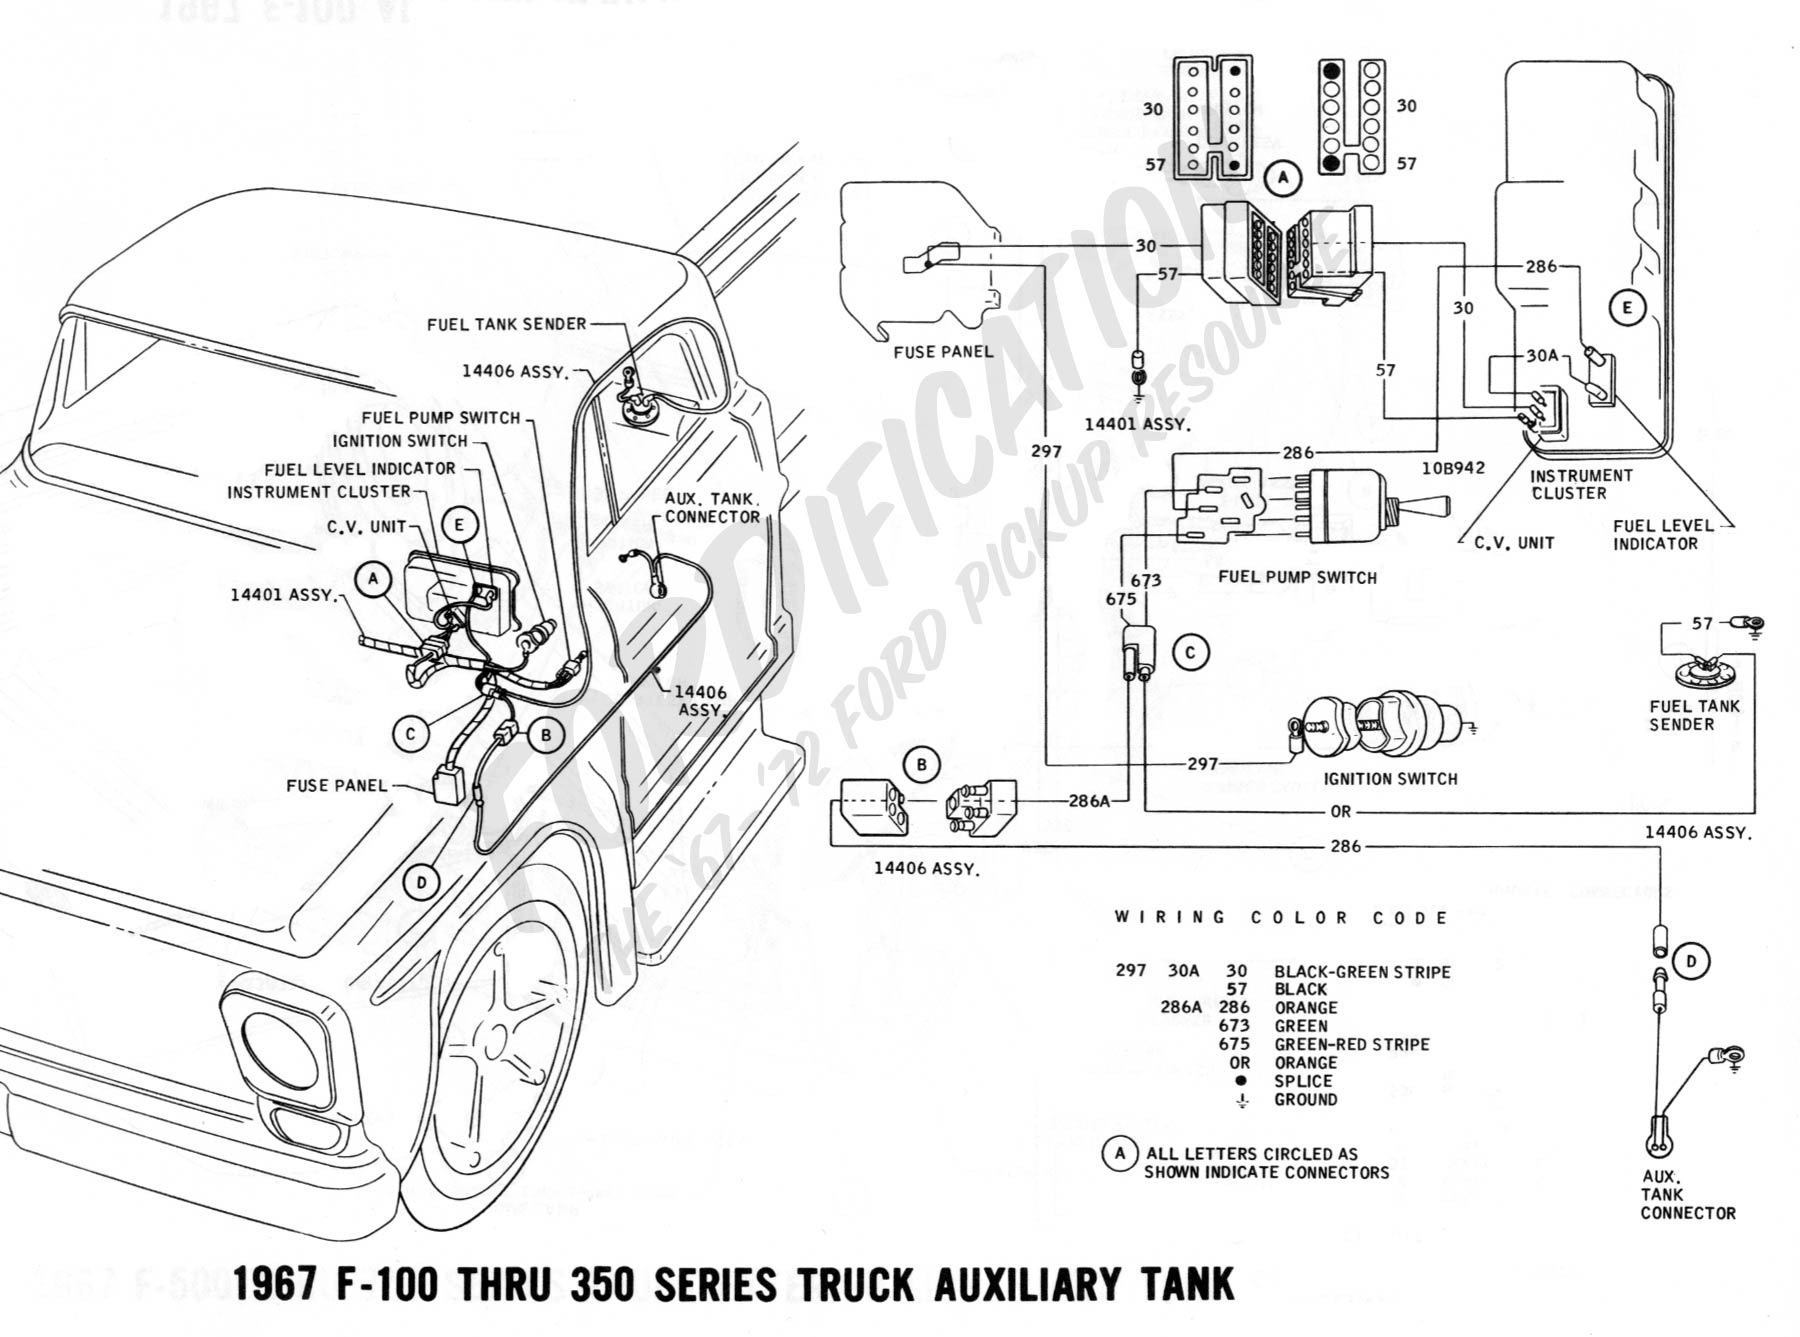 Ford Truck Diagrams Online Schematics Diagram 1993 F150 Wiring Technical Drawings And Section H Steering Column